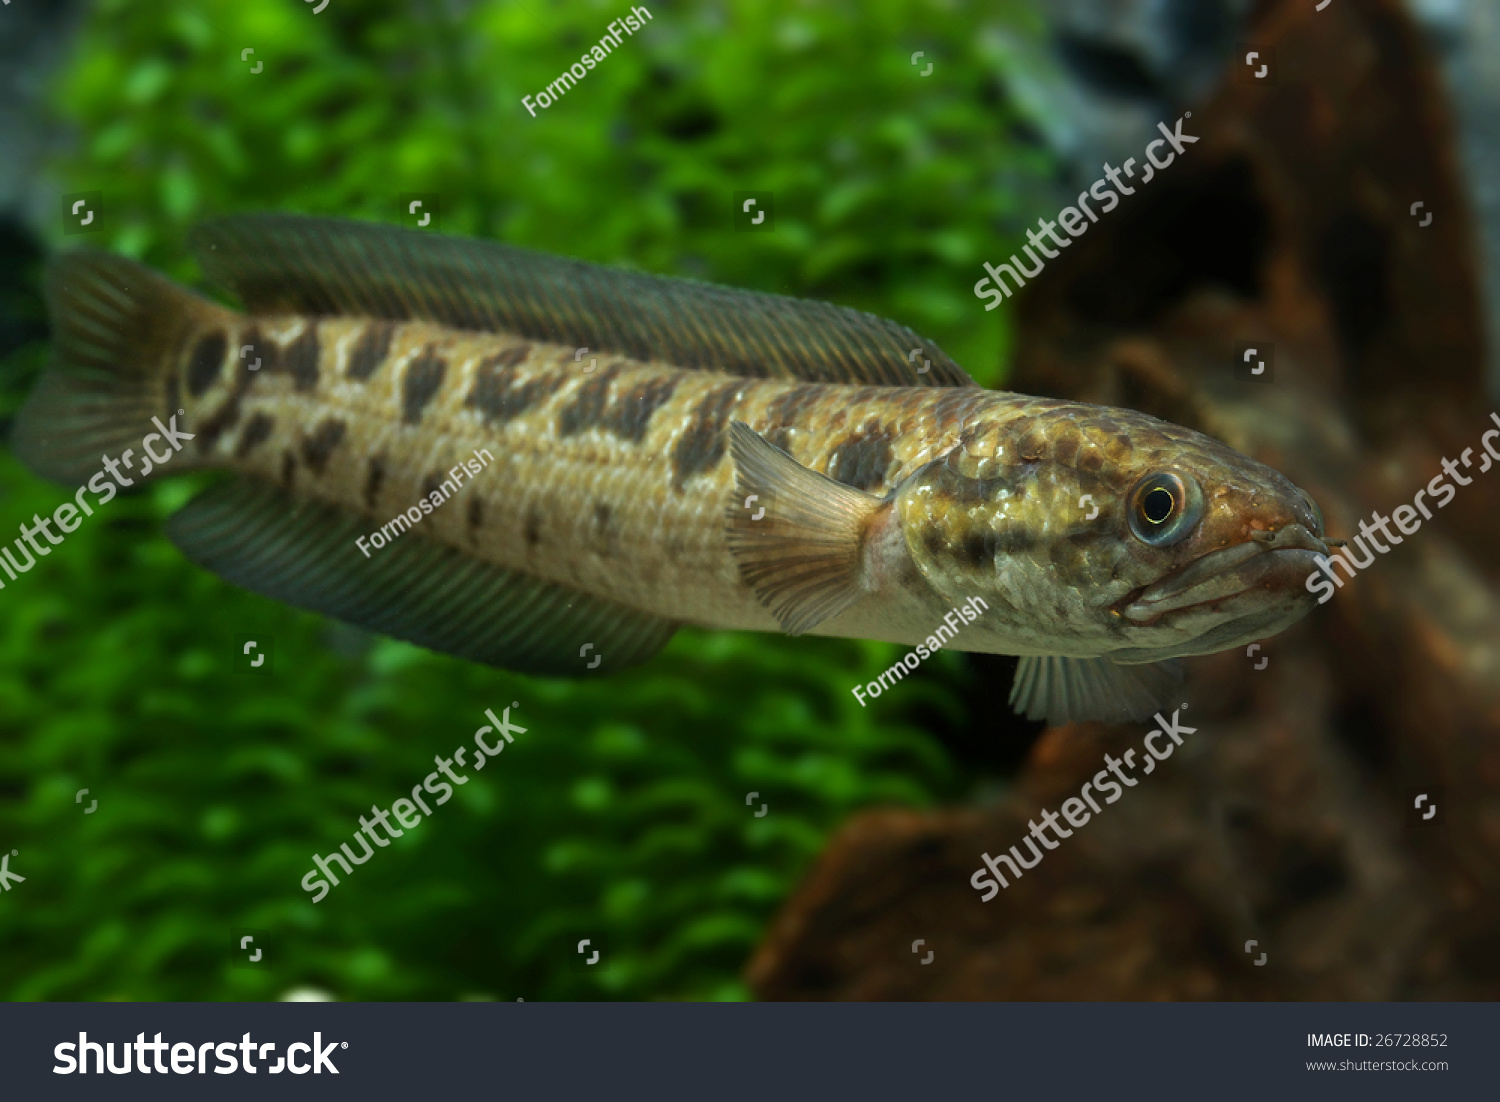 Channa Asiatica | Chinese Snakehead Channa Asiatica Stock Photo Royalty Free